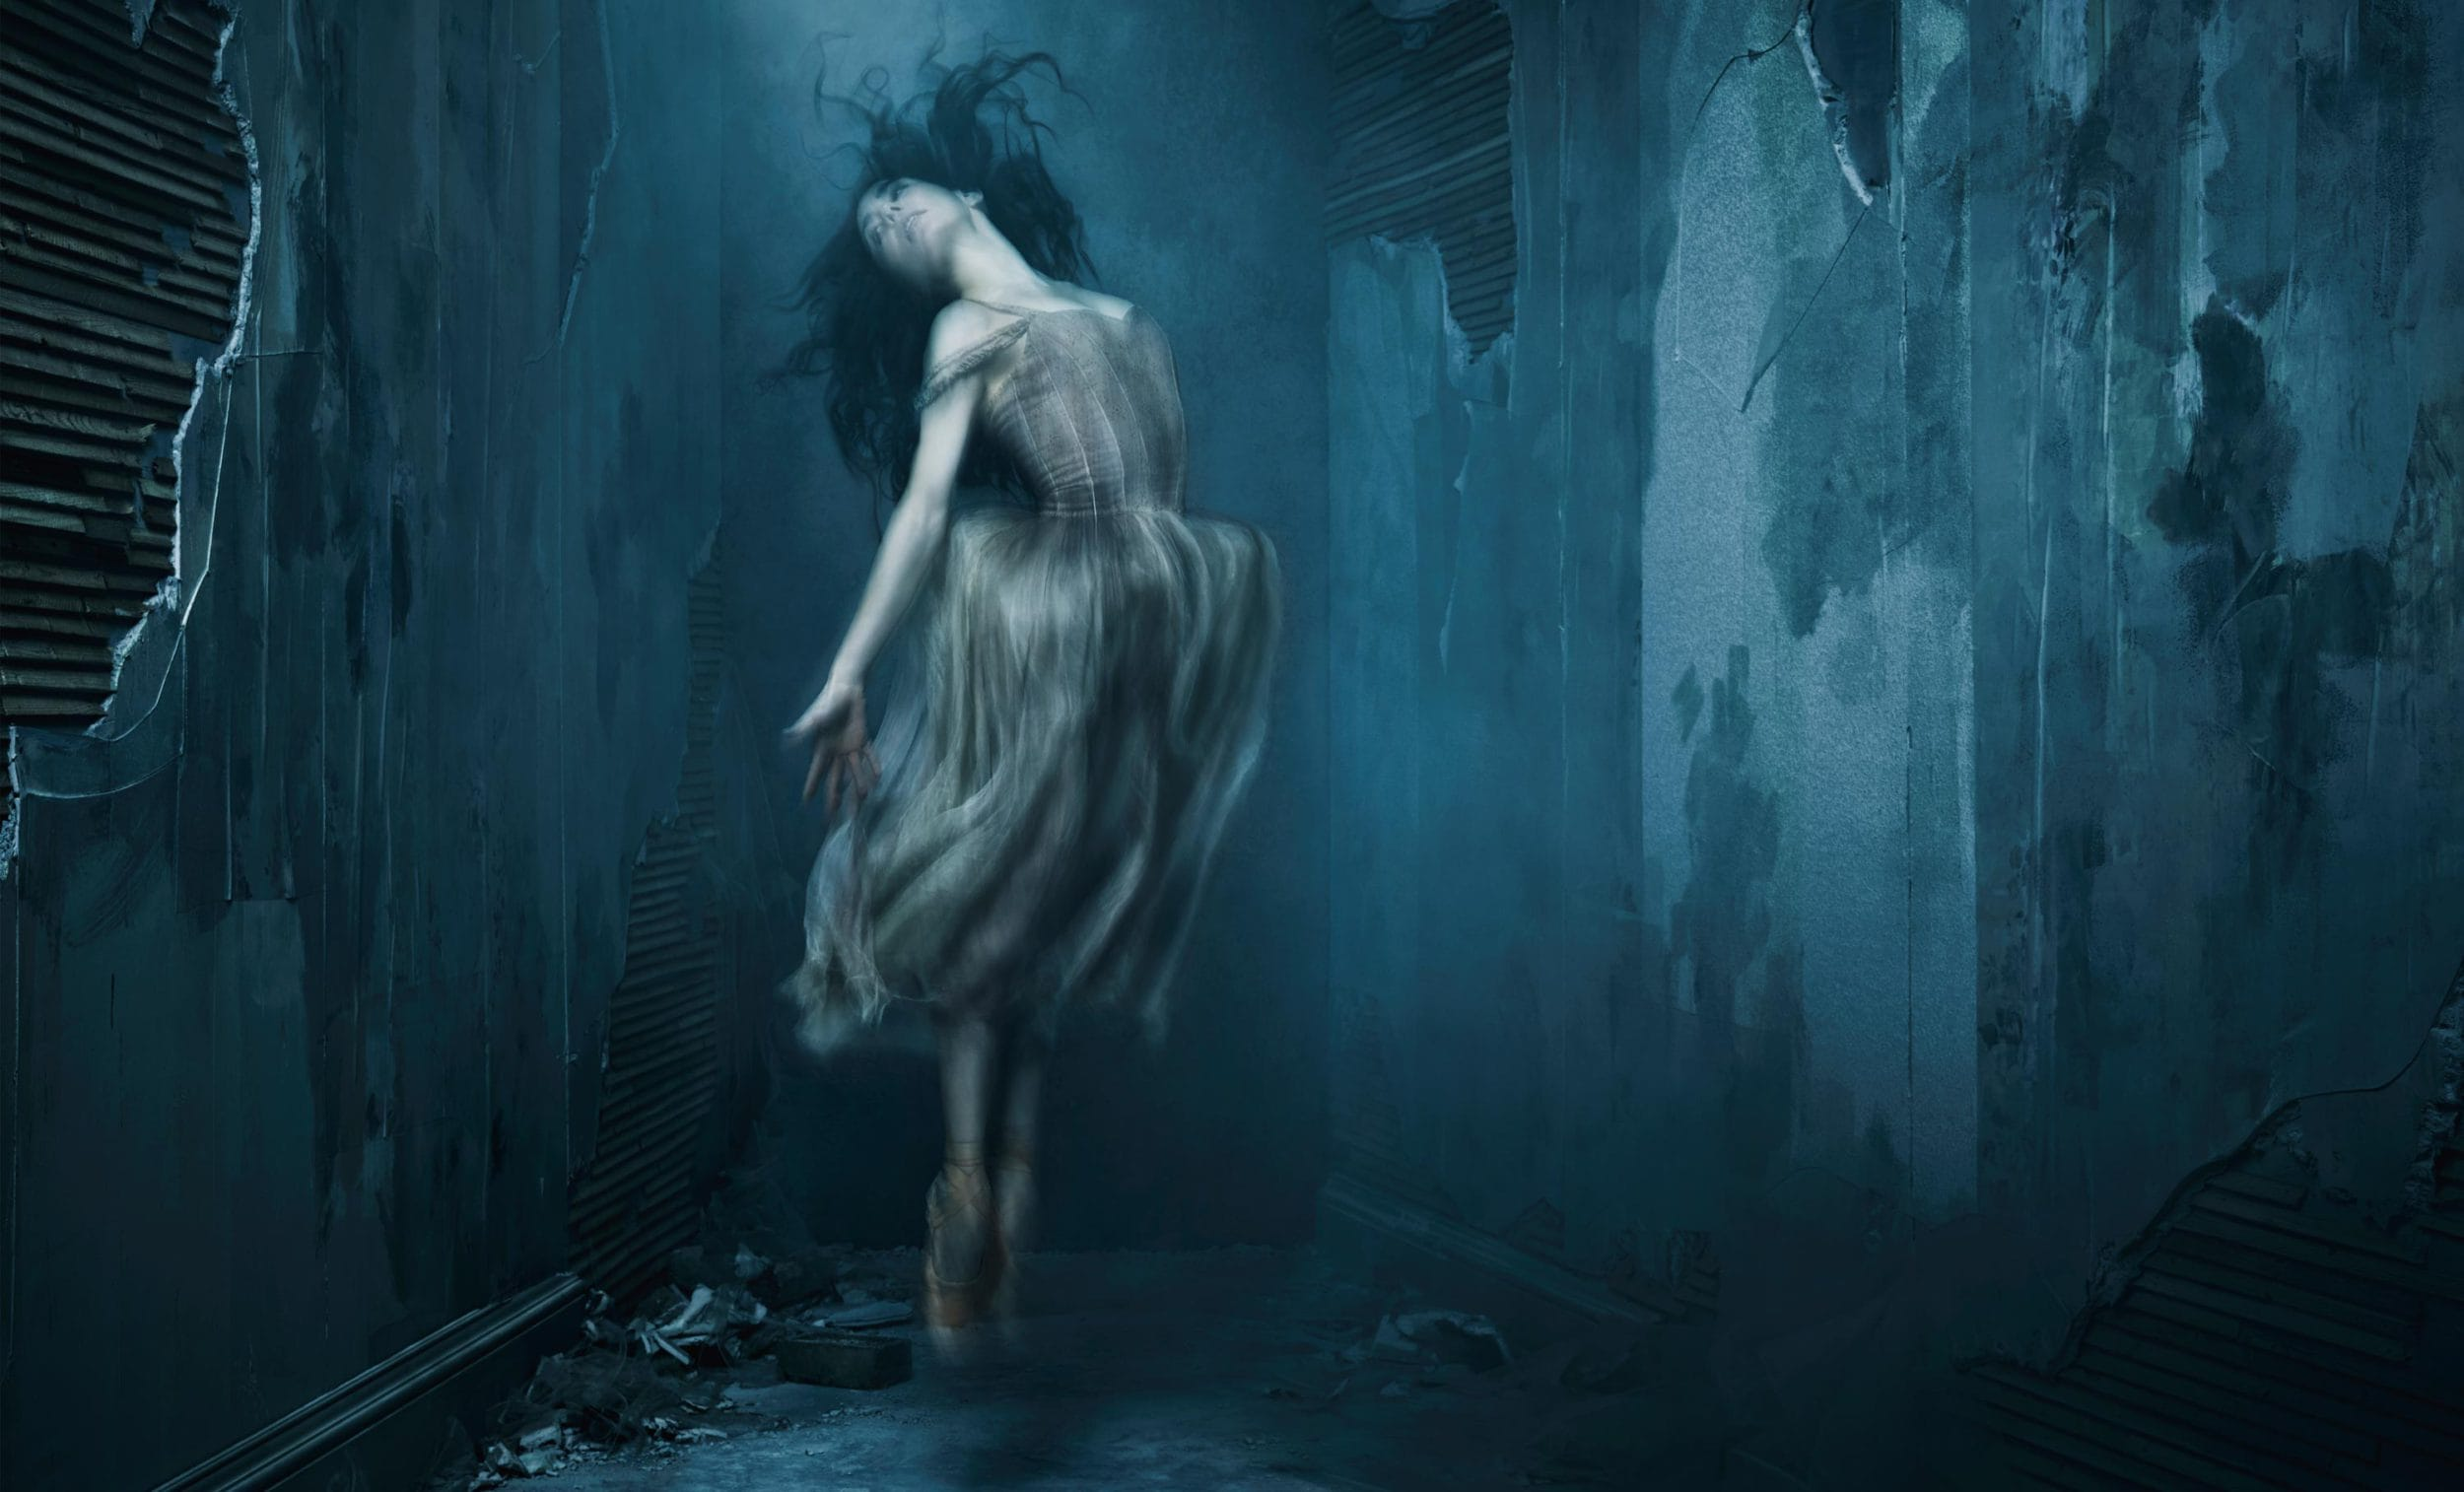 English-National-Ballet-Giselle-by-Akram-Khan-Tamara-Rojo-c-Jason-Bell-Akram-Khans-Giselle--Jason-Bell-Art-Direction-and-Design-by-Charlotte-Wilkinson-Studio-2500x1514